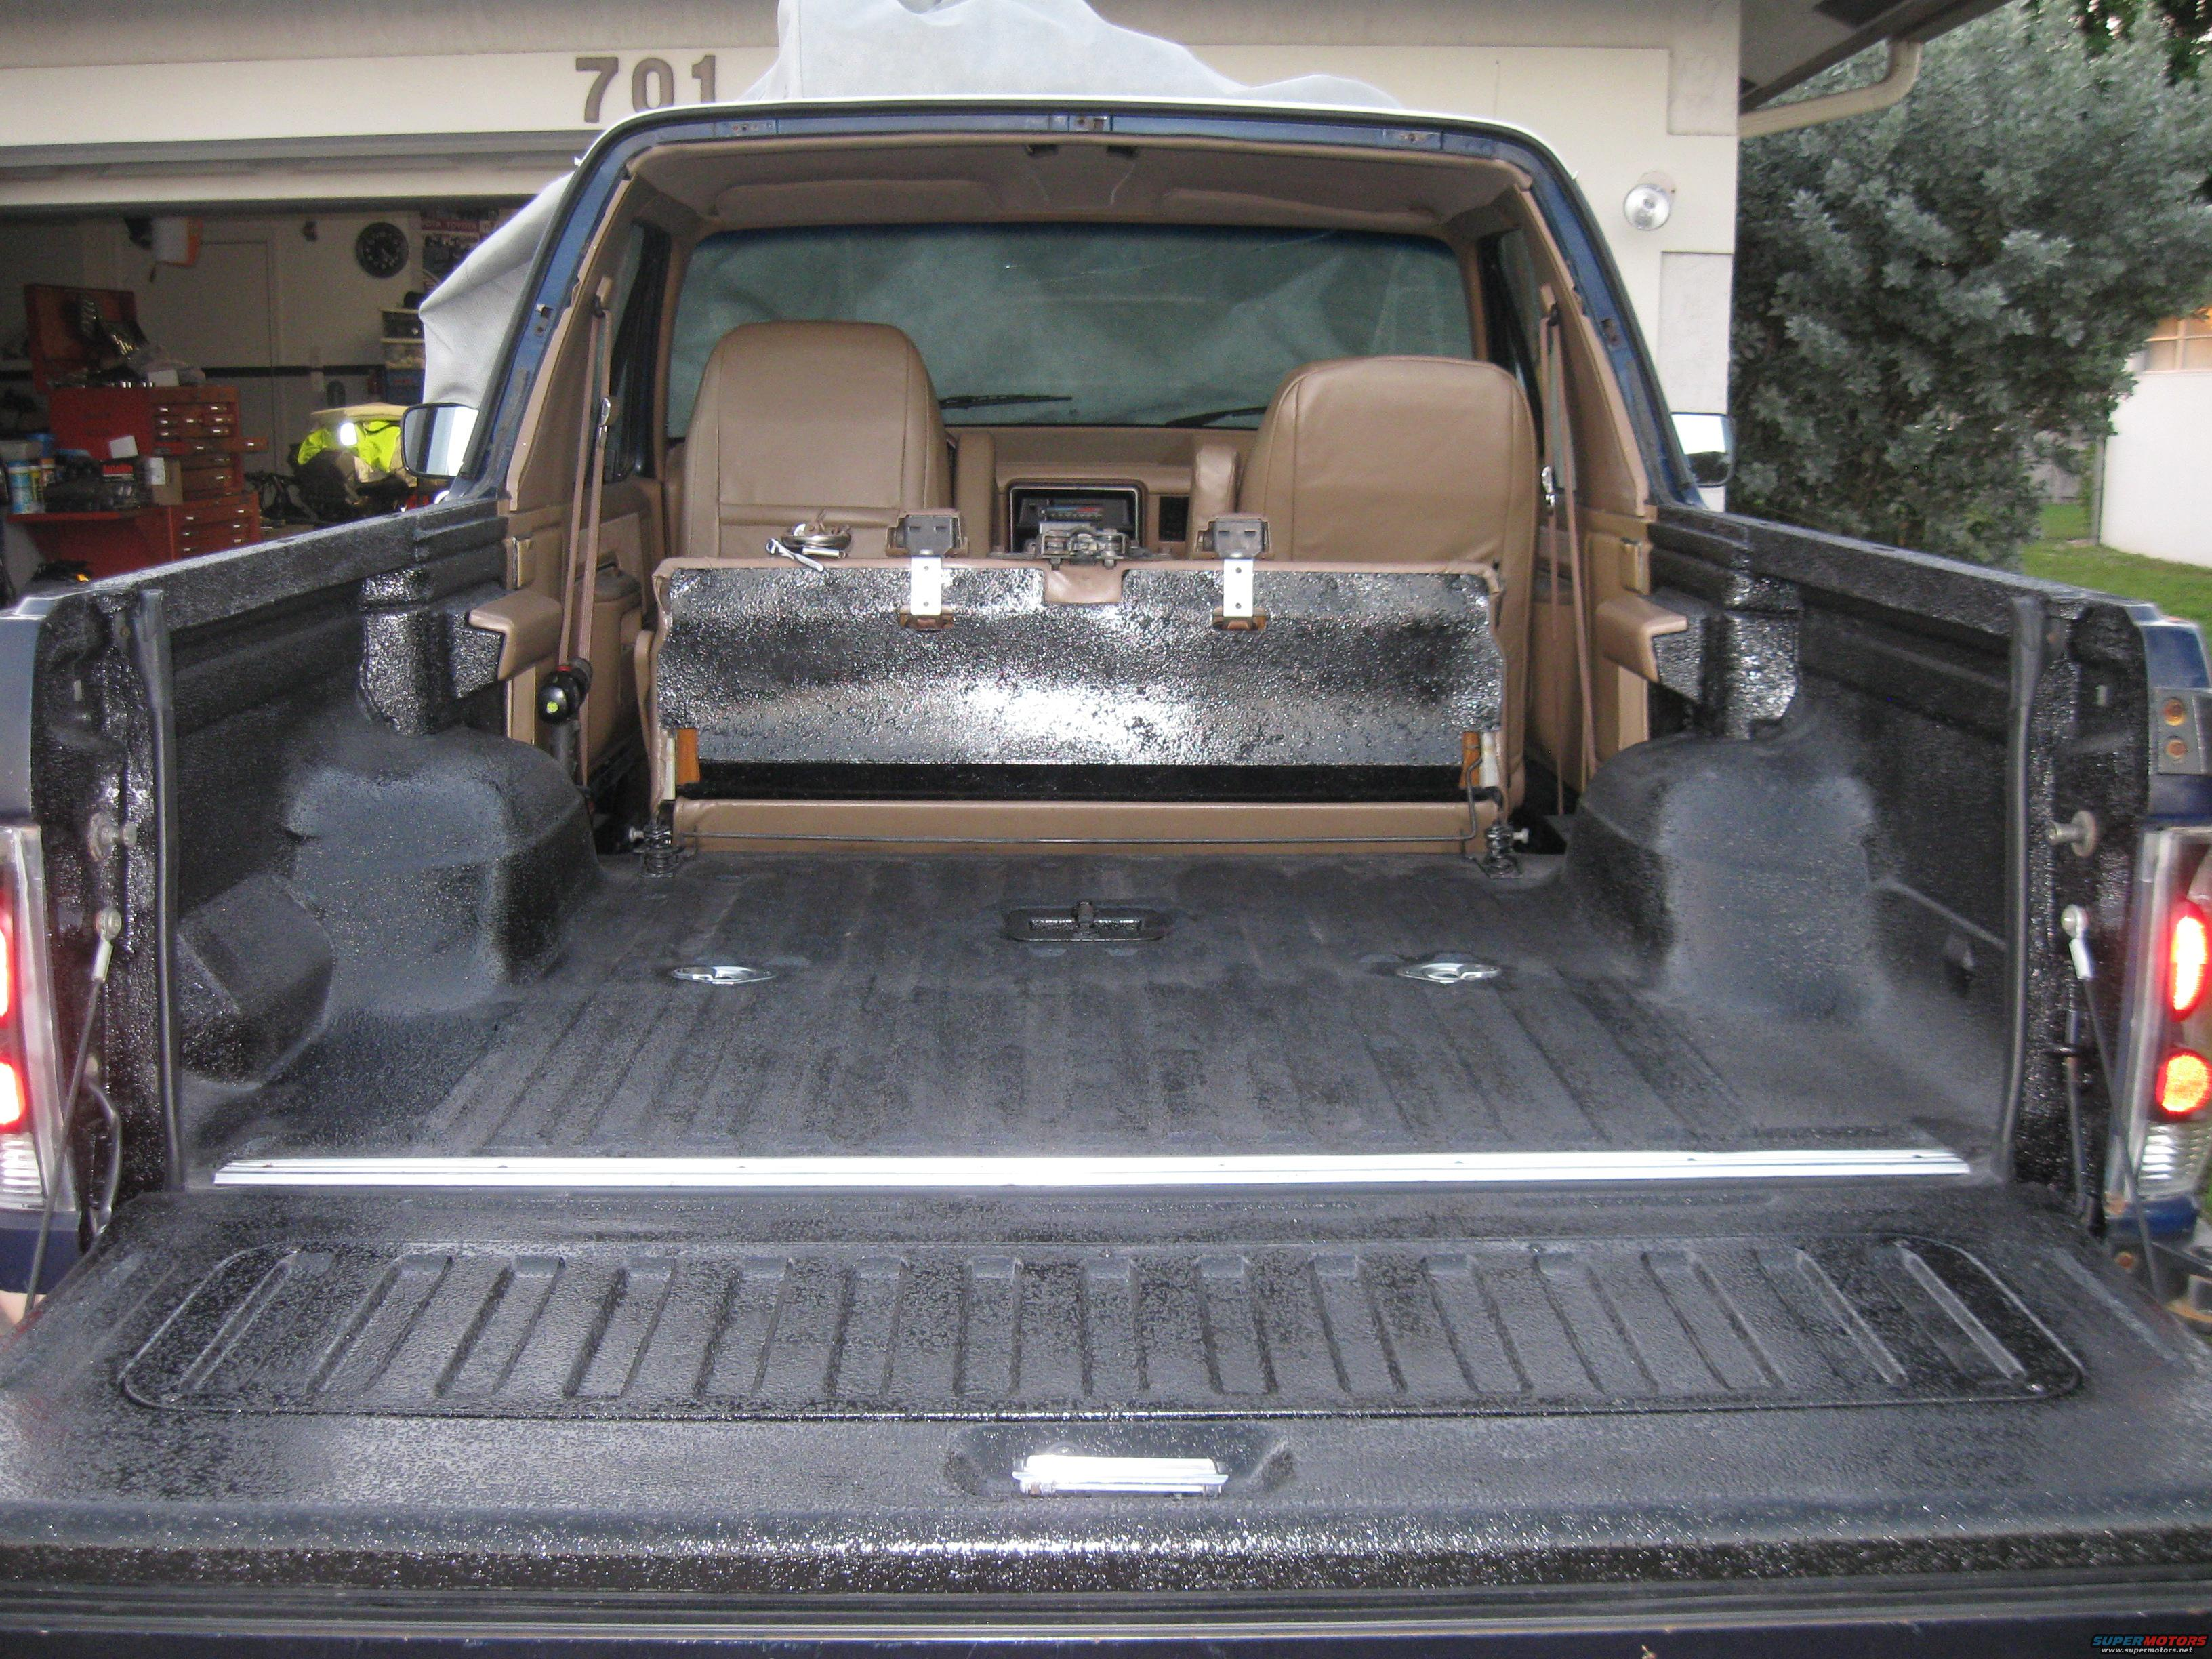 paint off prep diy bed img s bumper u winch road jeep toyota paints liner and